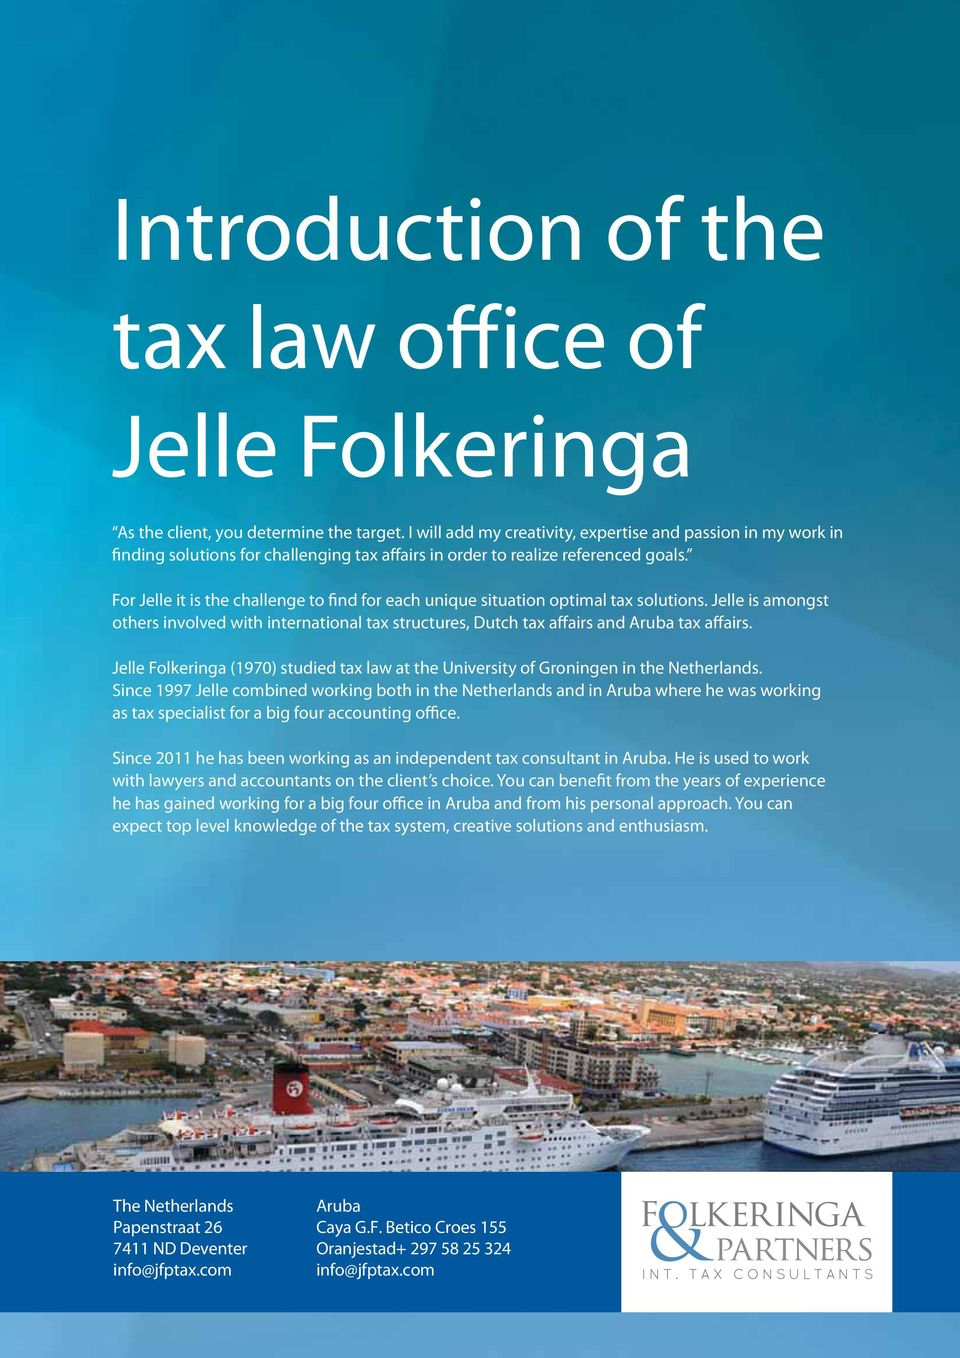 For Jelle it is the challenge to find for each unique situation optimal tax solutions. Jelle is amongst others involved with international tax structures, Dutch tax affairs and Aruba tax affairs.